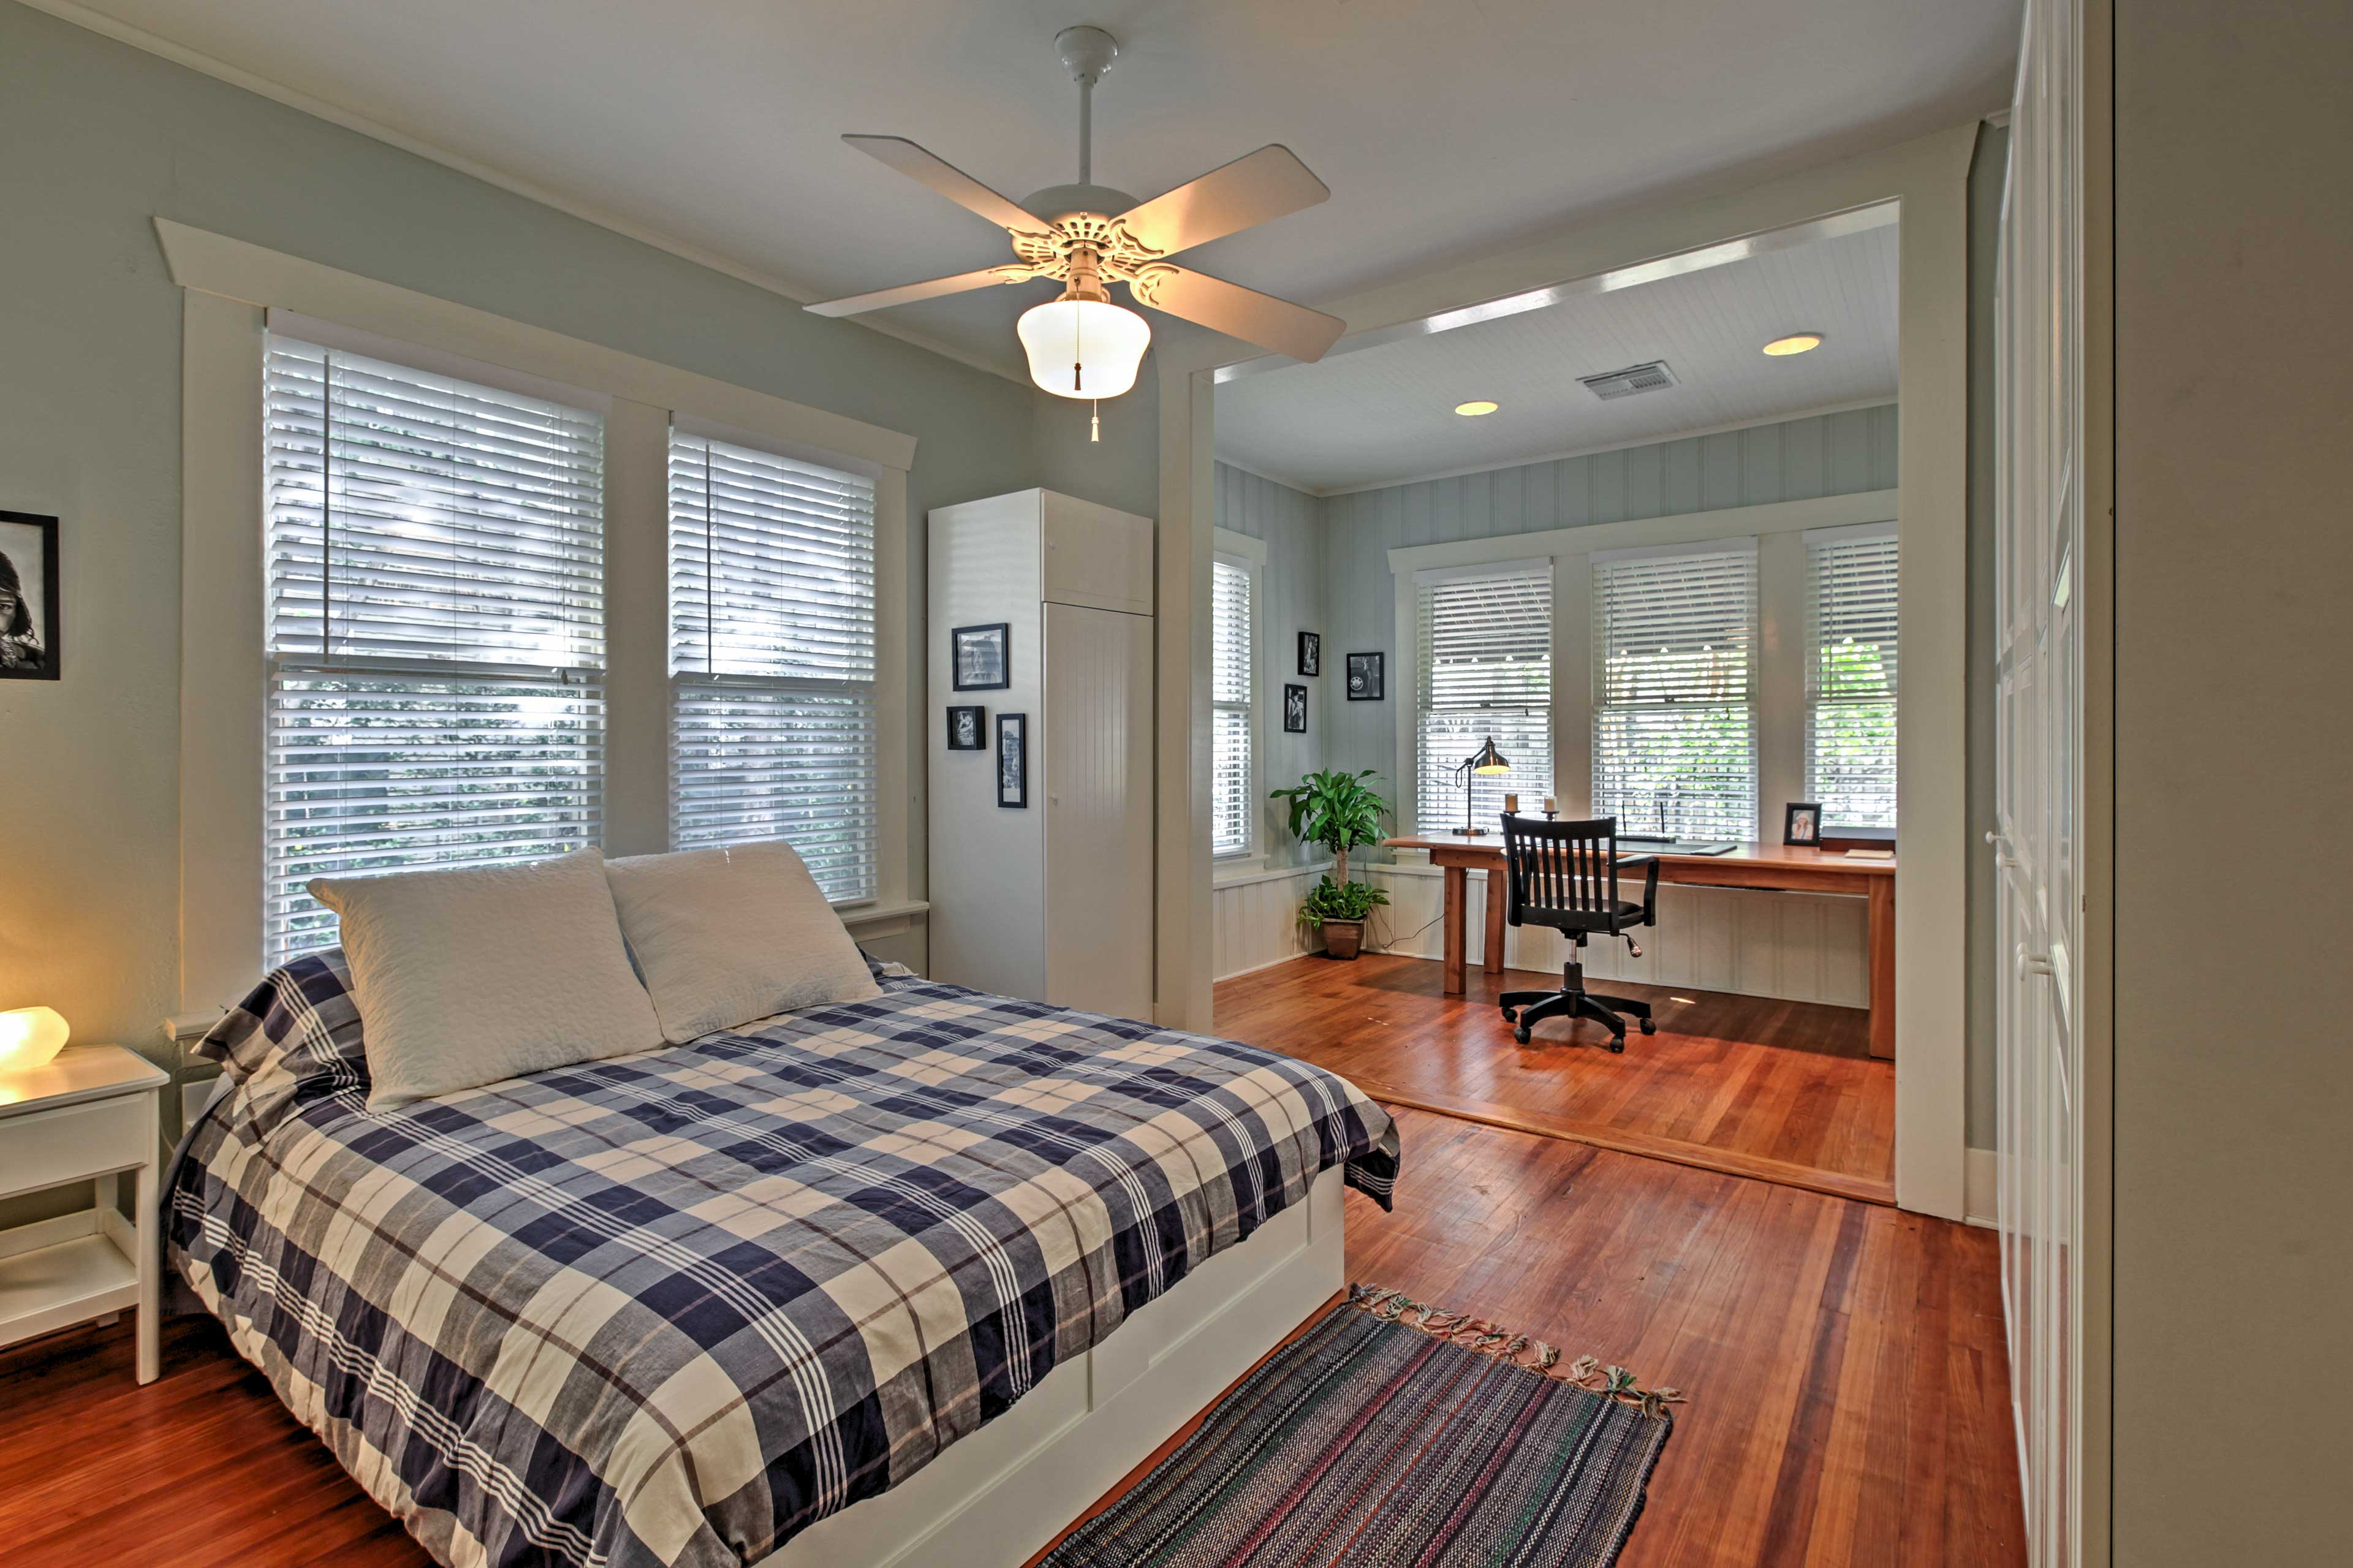 The Modern bedroom has bright windows throughout to illuminate the space.